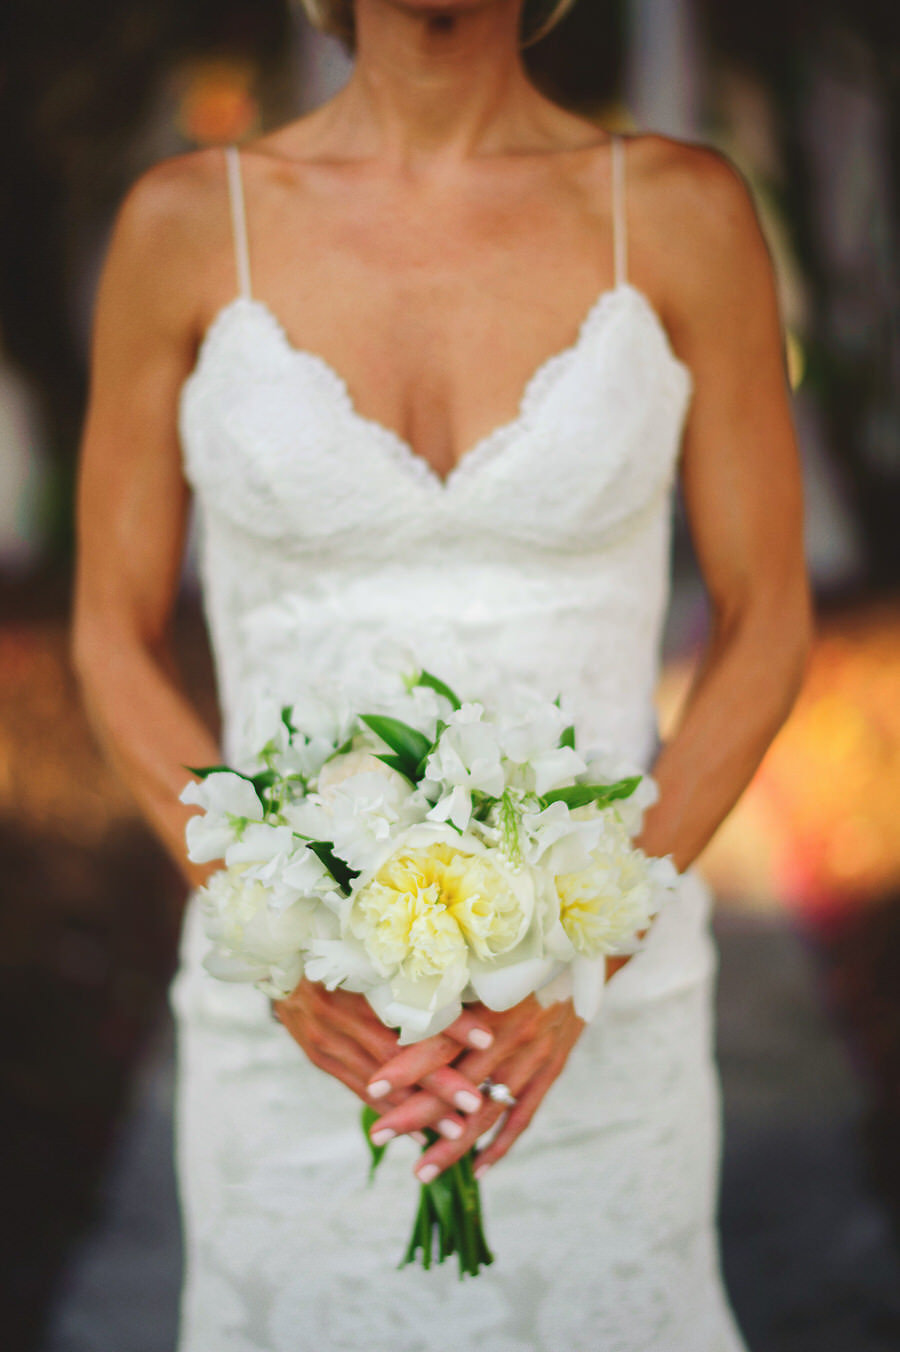 Bridal Wedding Portrait in Ivory Lace Katie May Wedding Dress with Spaghetti Straps and Elegant Ivory Wedding Bouquet of Ivory Peonies and Greenery | St. Petersburg Wedding Florist Iza's Flowers